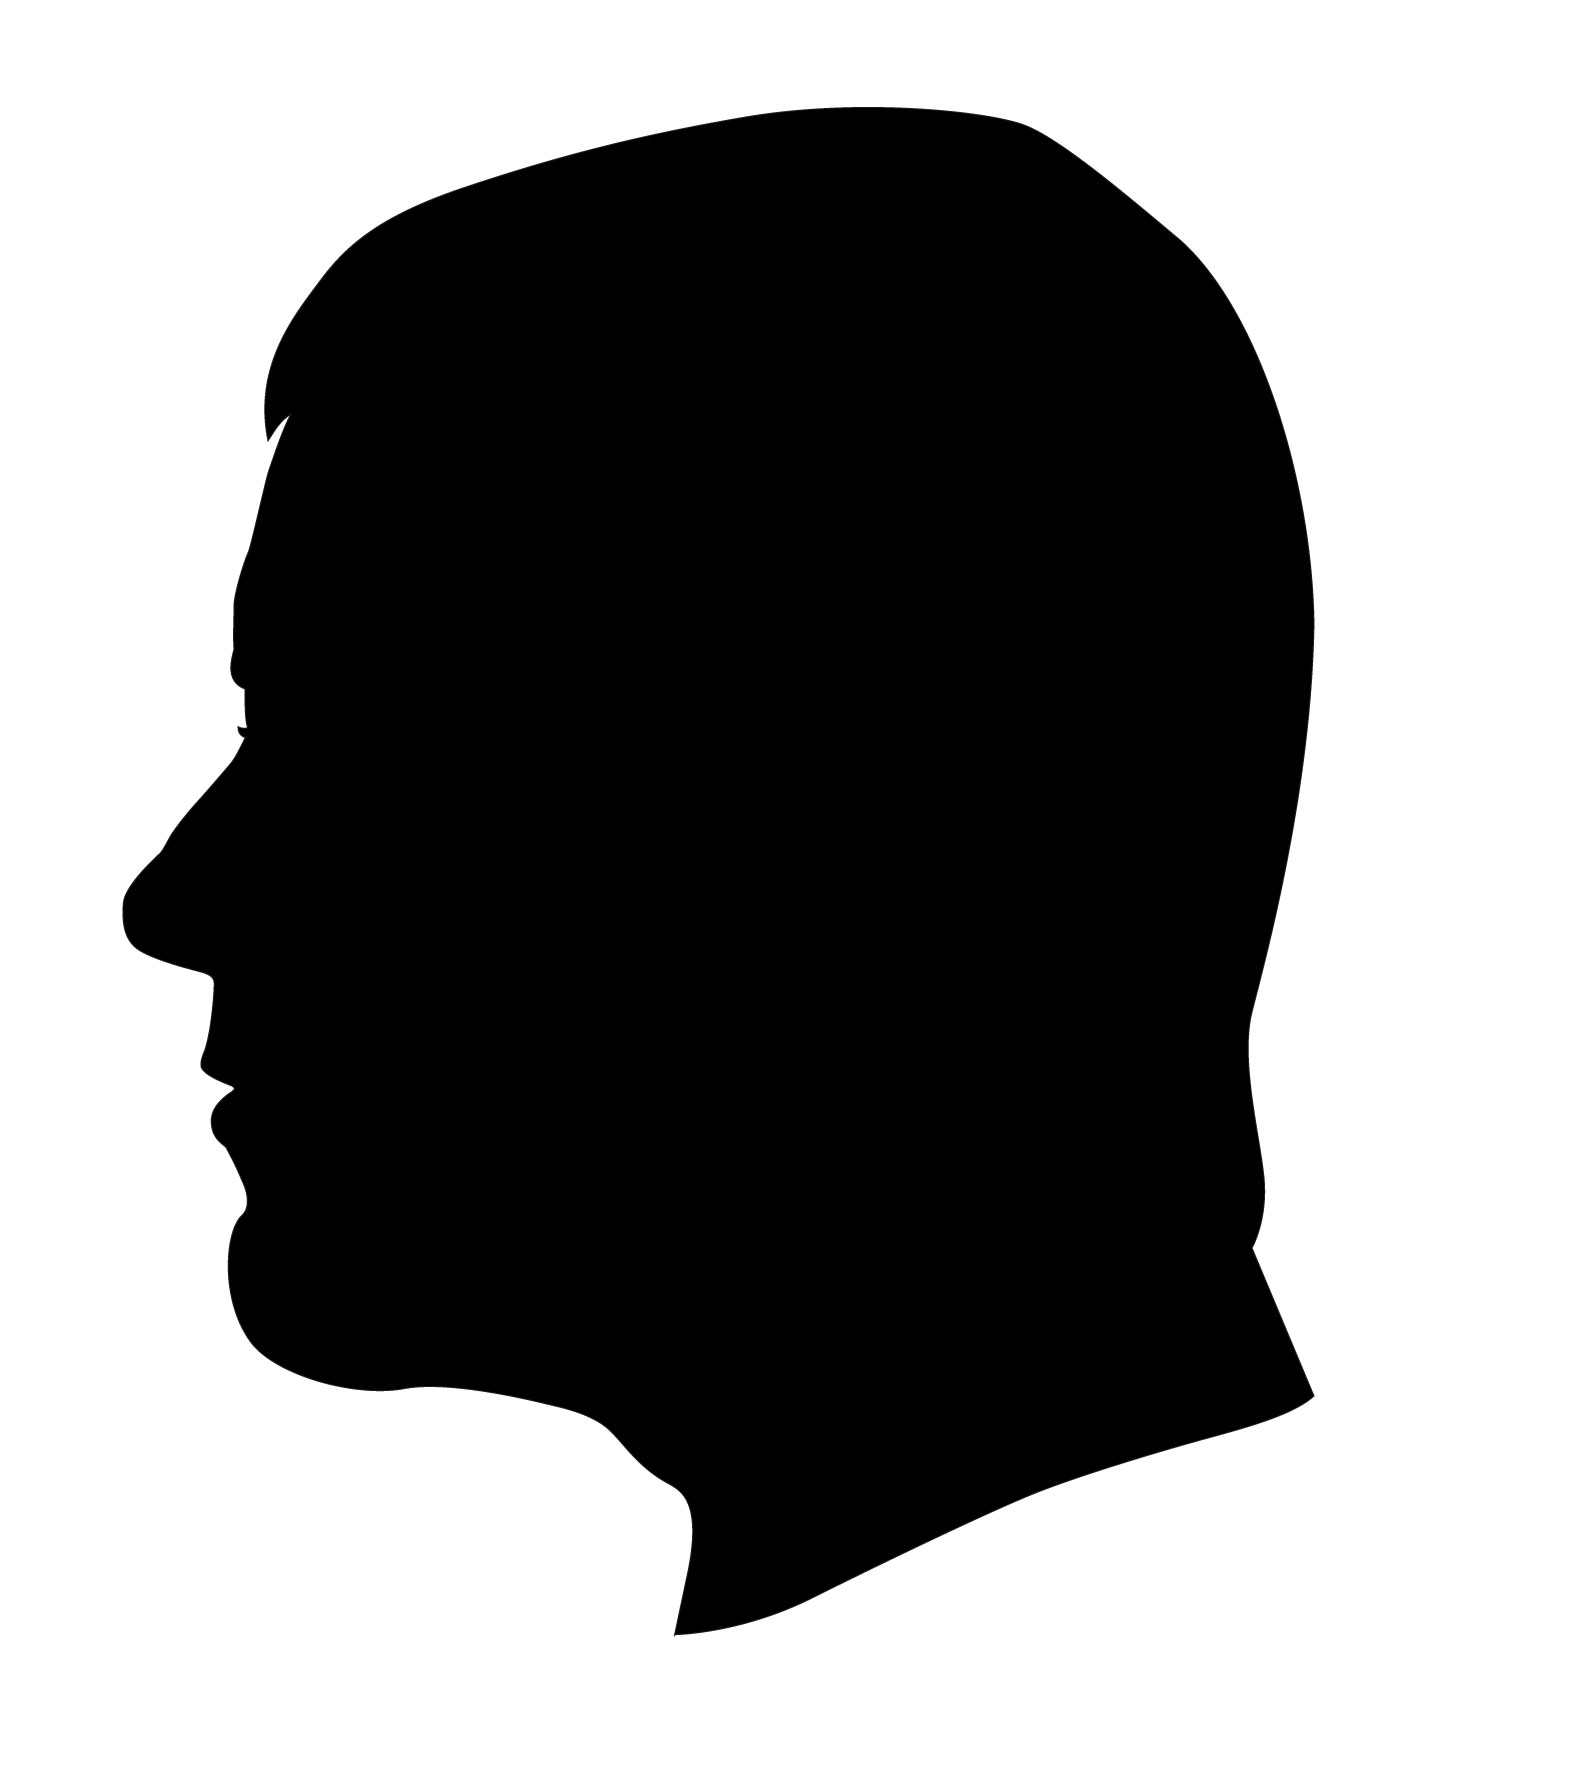 Free Man Head Silhouette Png, Download Free Clip Art, Free.